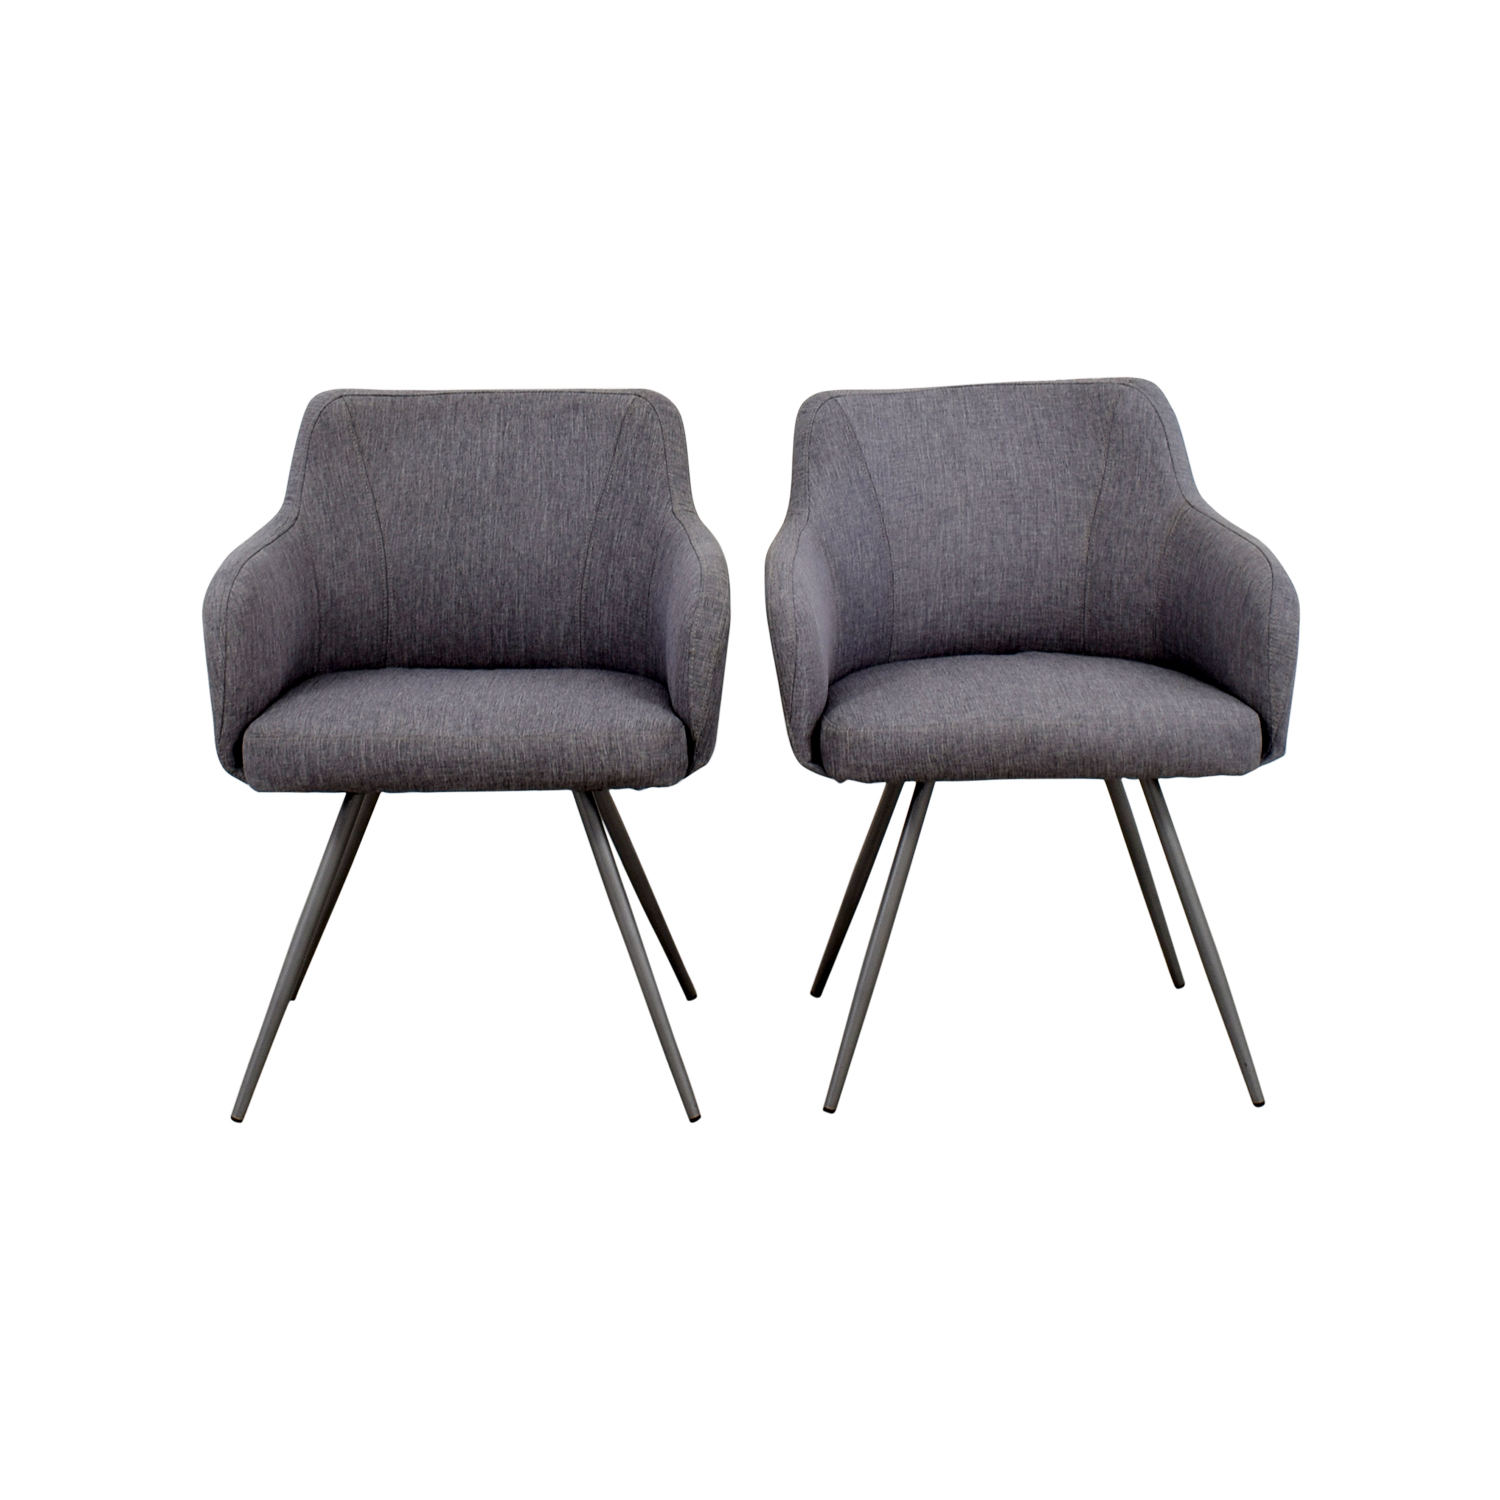 Amazing 63 Off Allmodern Allmodern Mid Century Grey Upholstered Dining Chairs Chairs Evergreenethics Interior Chair Design Evergreenethicsorg